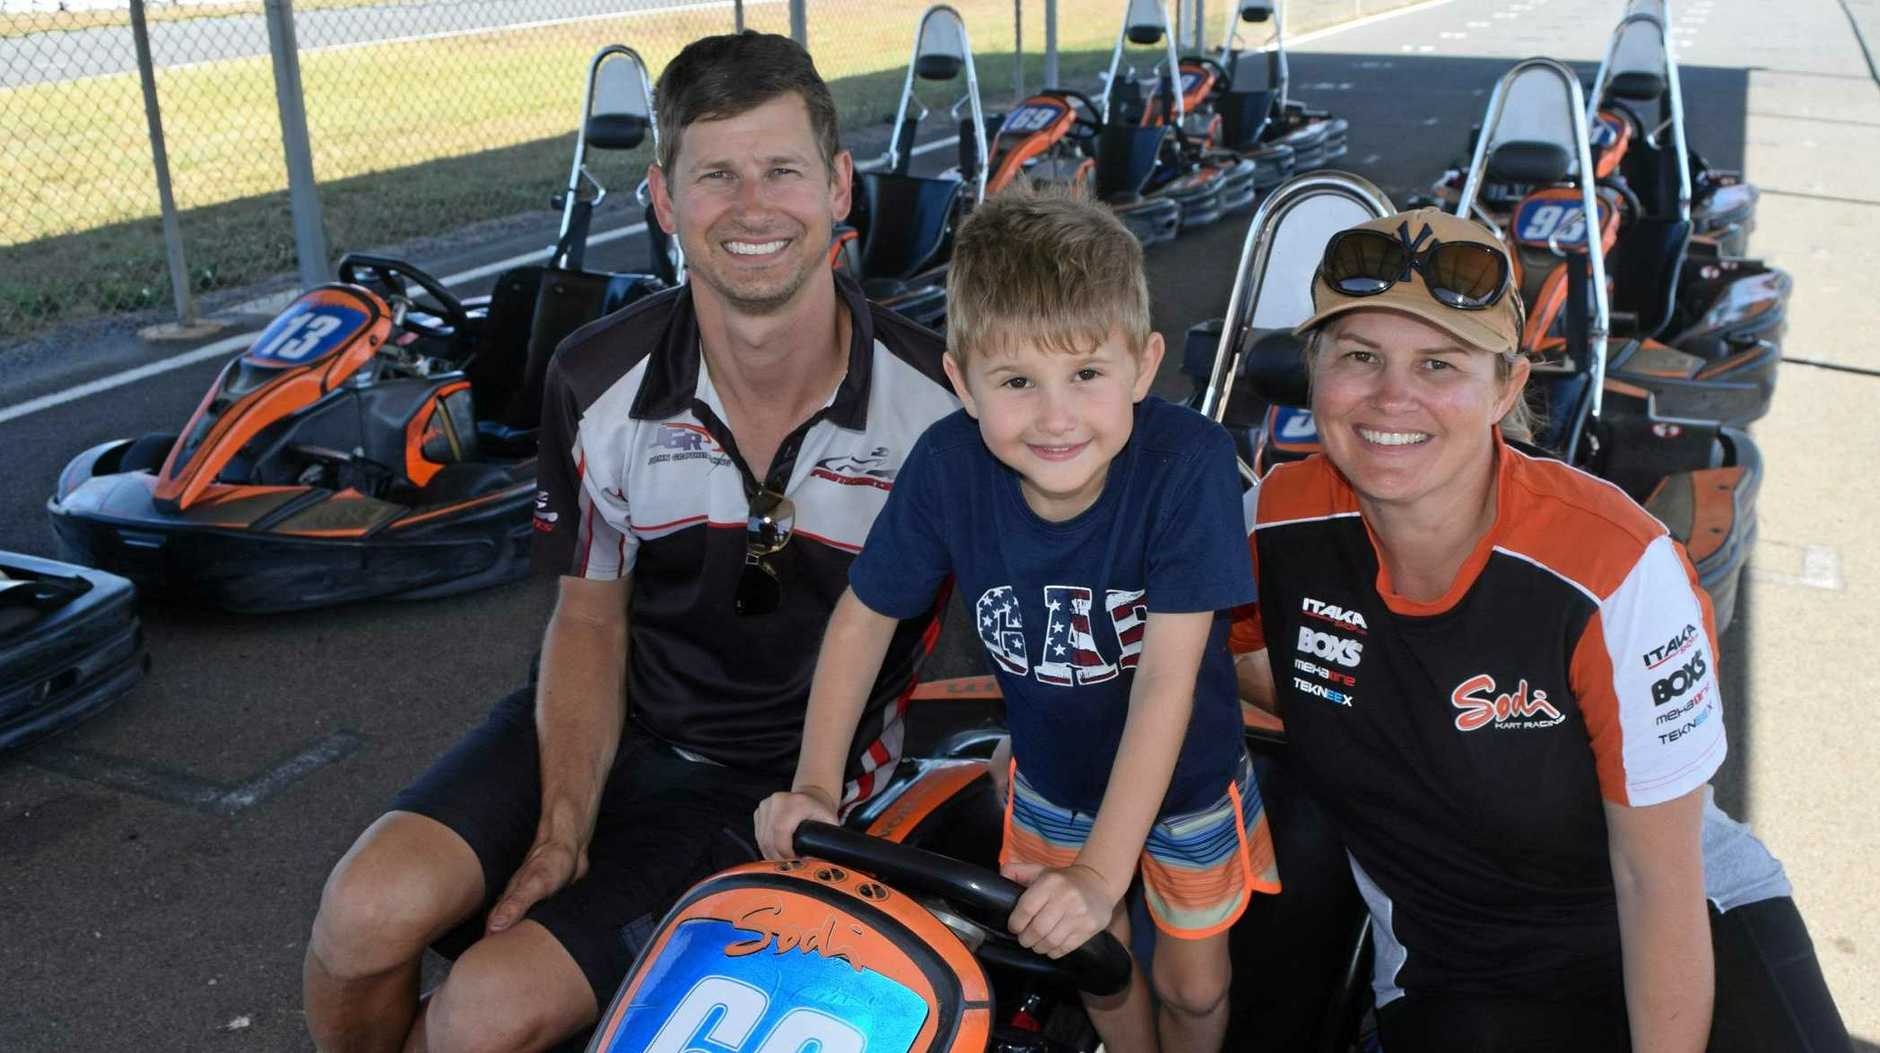 Johnny Grother, Carter Grother, 6, and Kellie Grother visted the Whitsundays with Fastkarts.